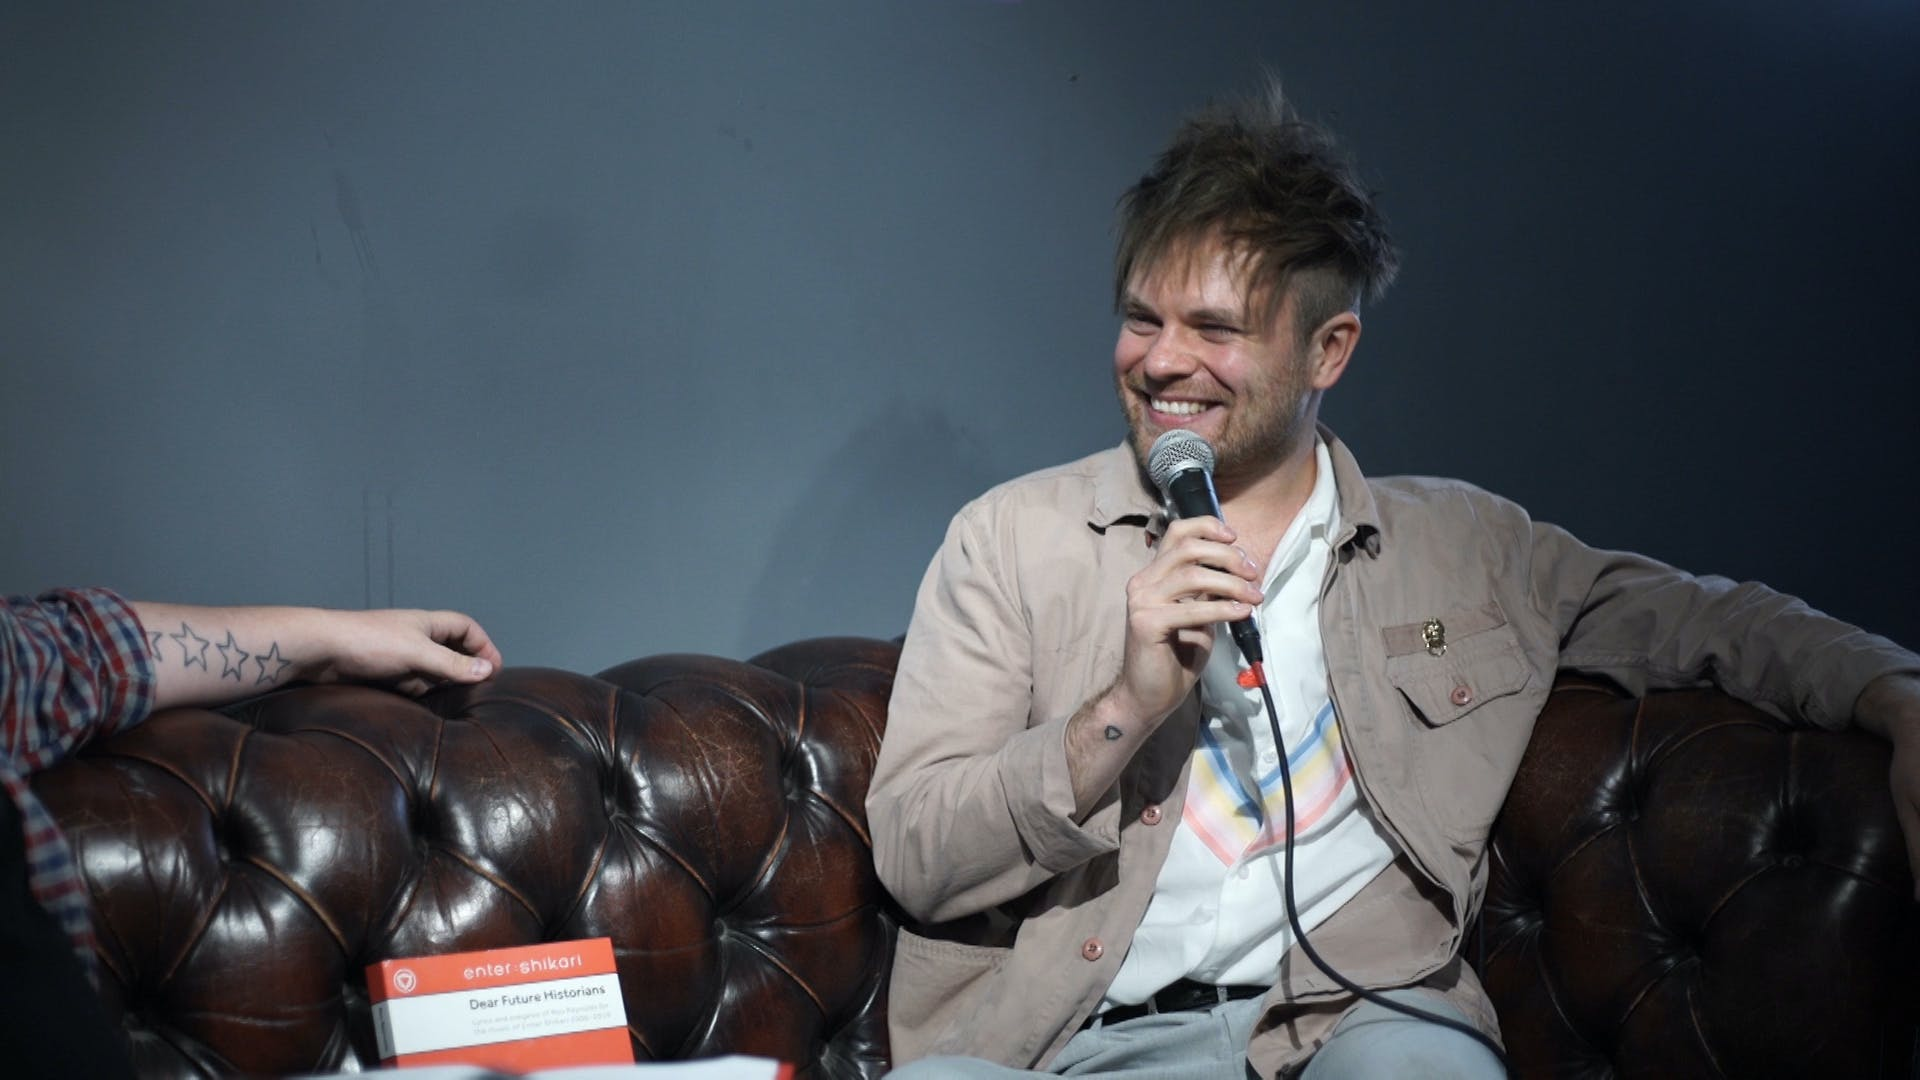 Enter Shikari's Rou Reynolds Joins Kerrang! In Conversation